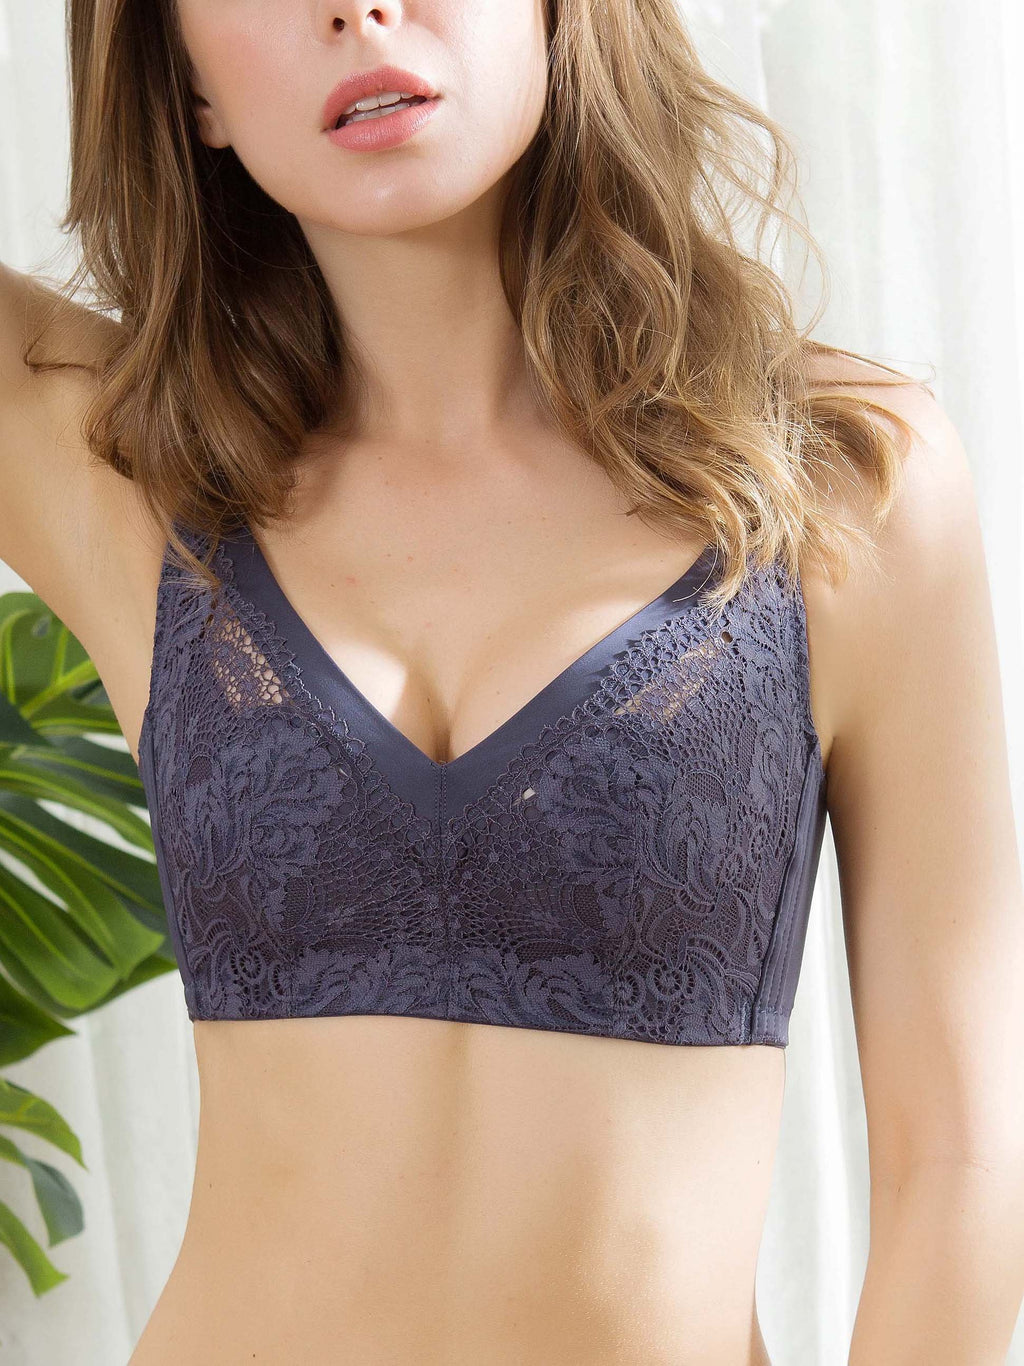 Deep V Ultra Thin Crystal Cup Lace Bra-Plus Size Bras-Fechicin.com